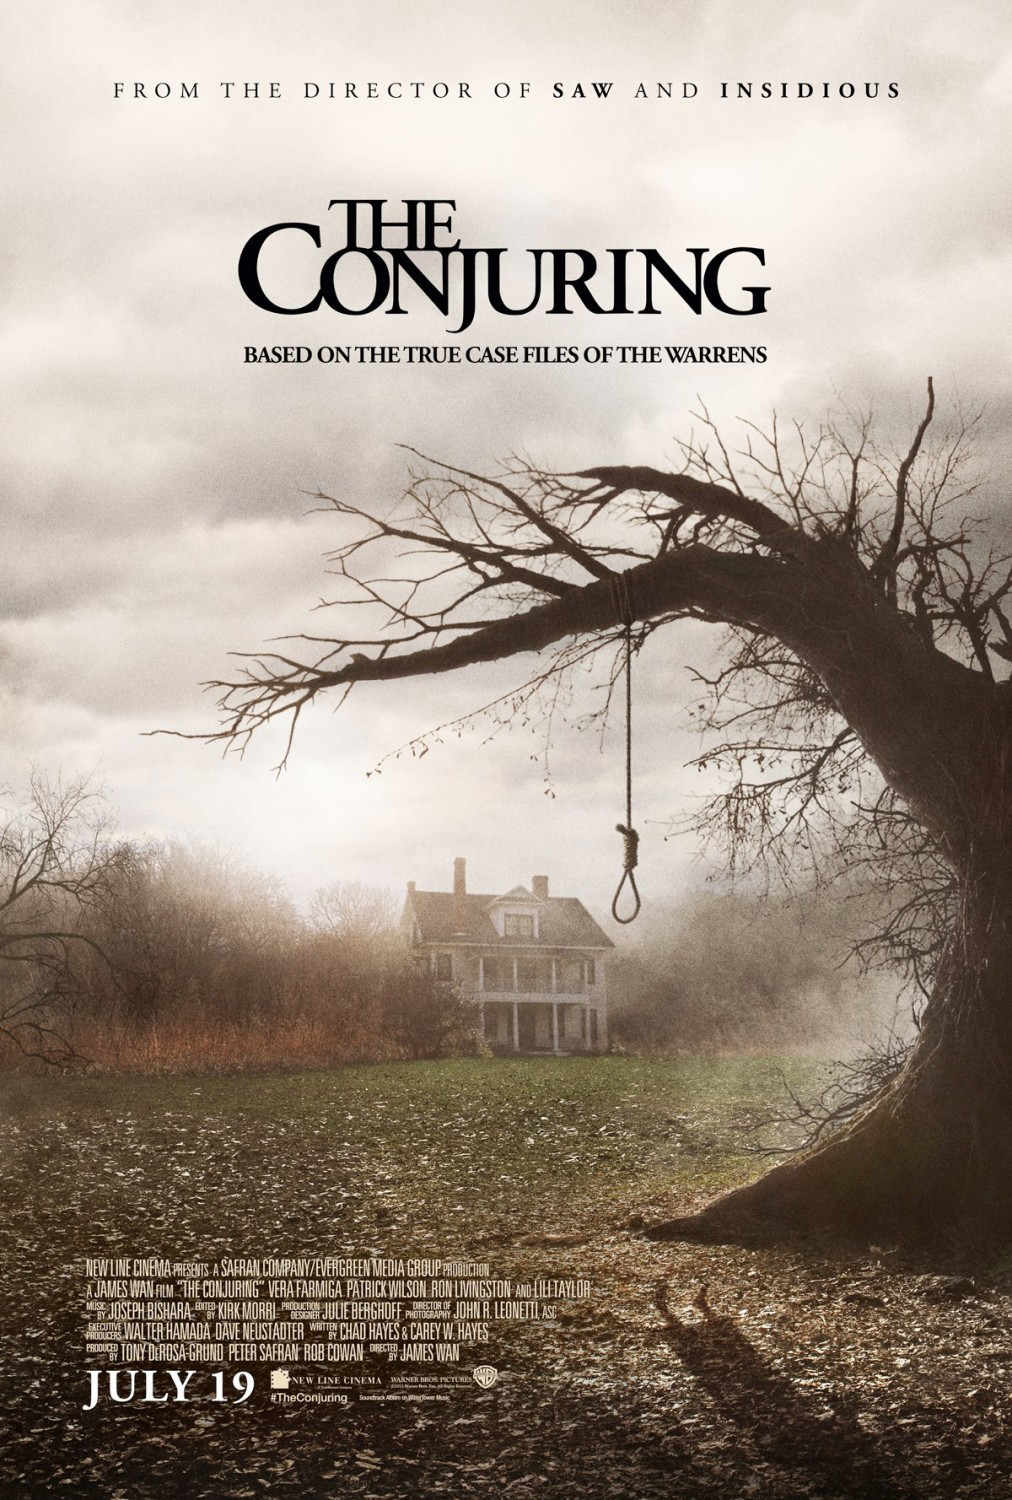 IMAGE: The Conjuring